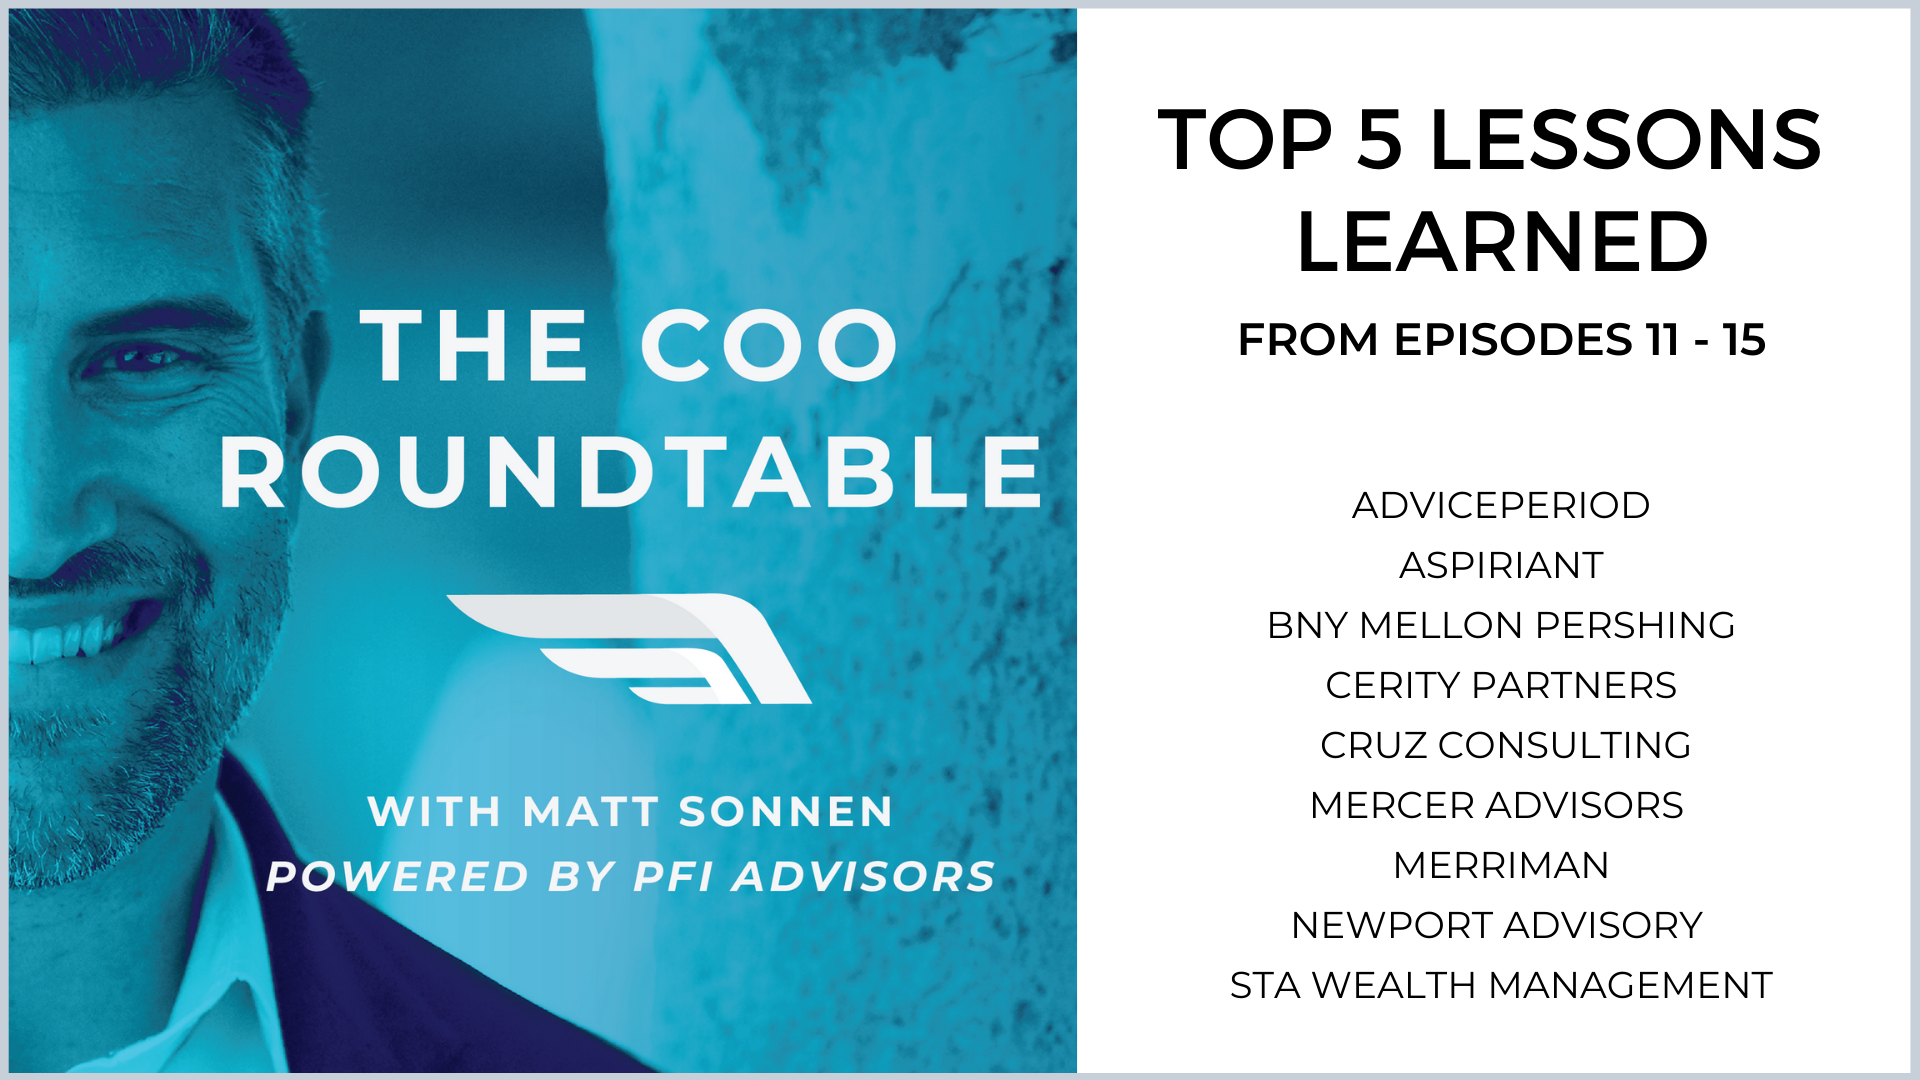 Top 5 Lessons Learned from Episodes  11-15 of The COO Roundtable